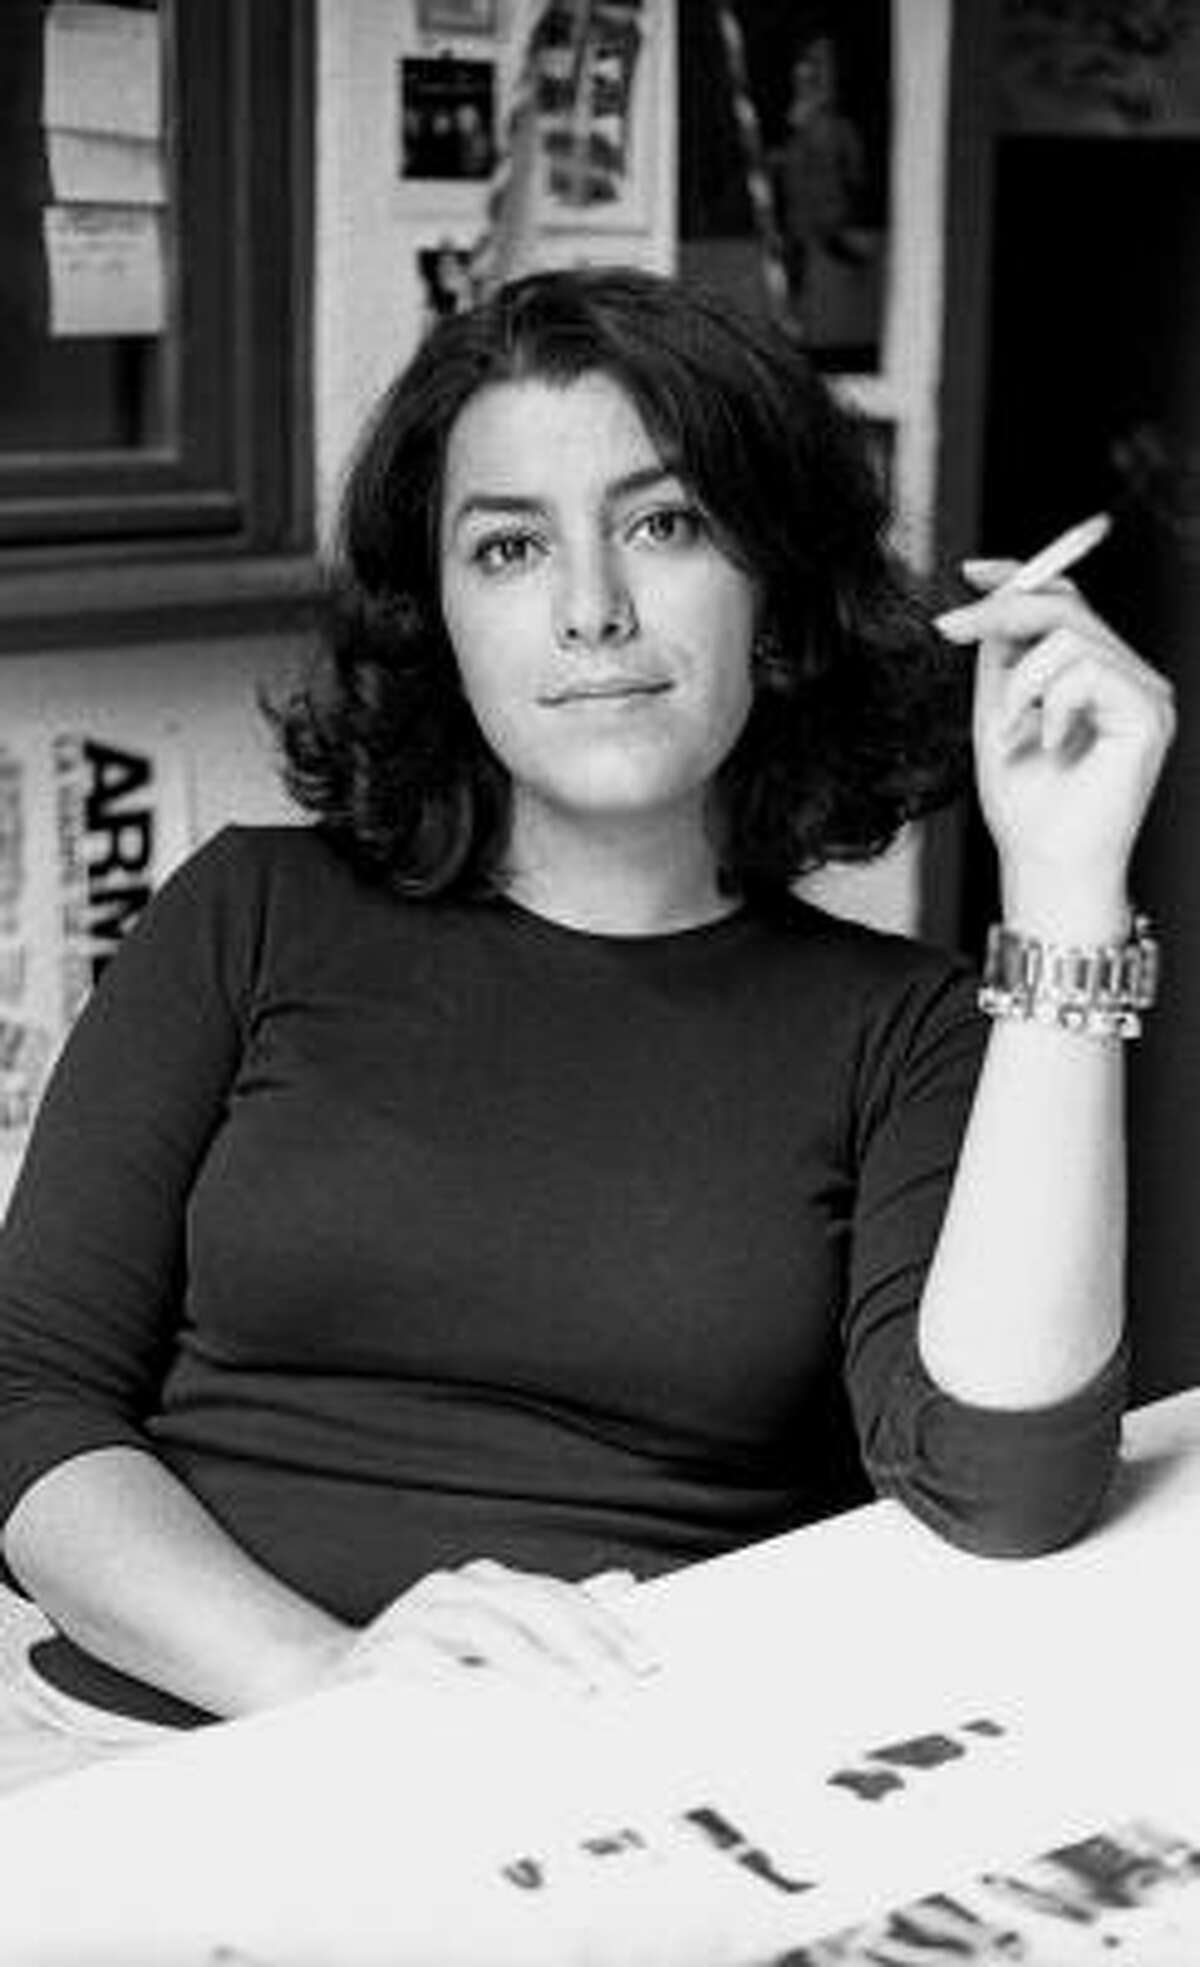 Marjane Satrapi, who was raised in Iran during the Khomeini-era and later escaped to France, is best known for her graphic memoirs Persepolis and Persepolis 2.